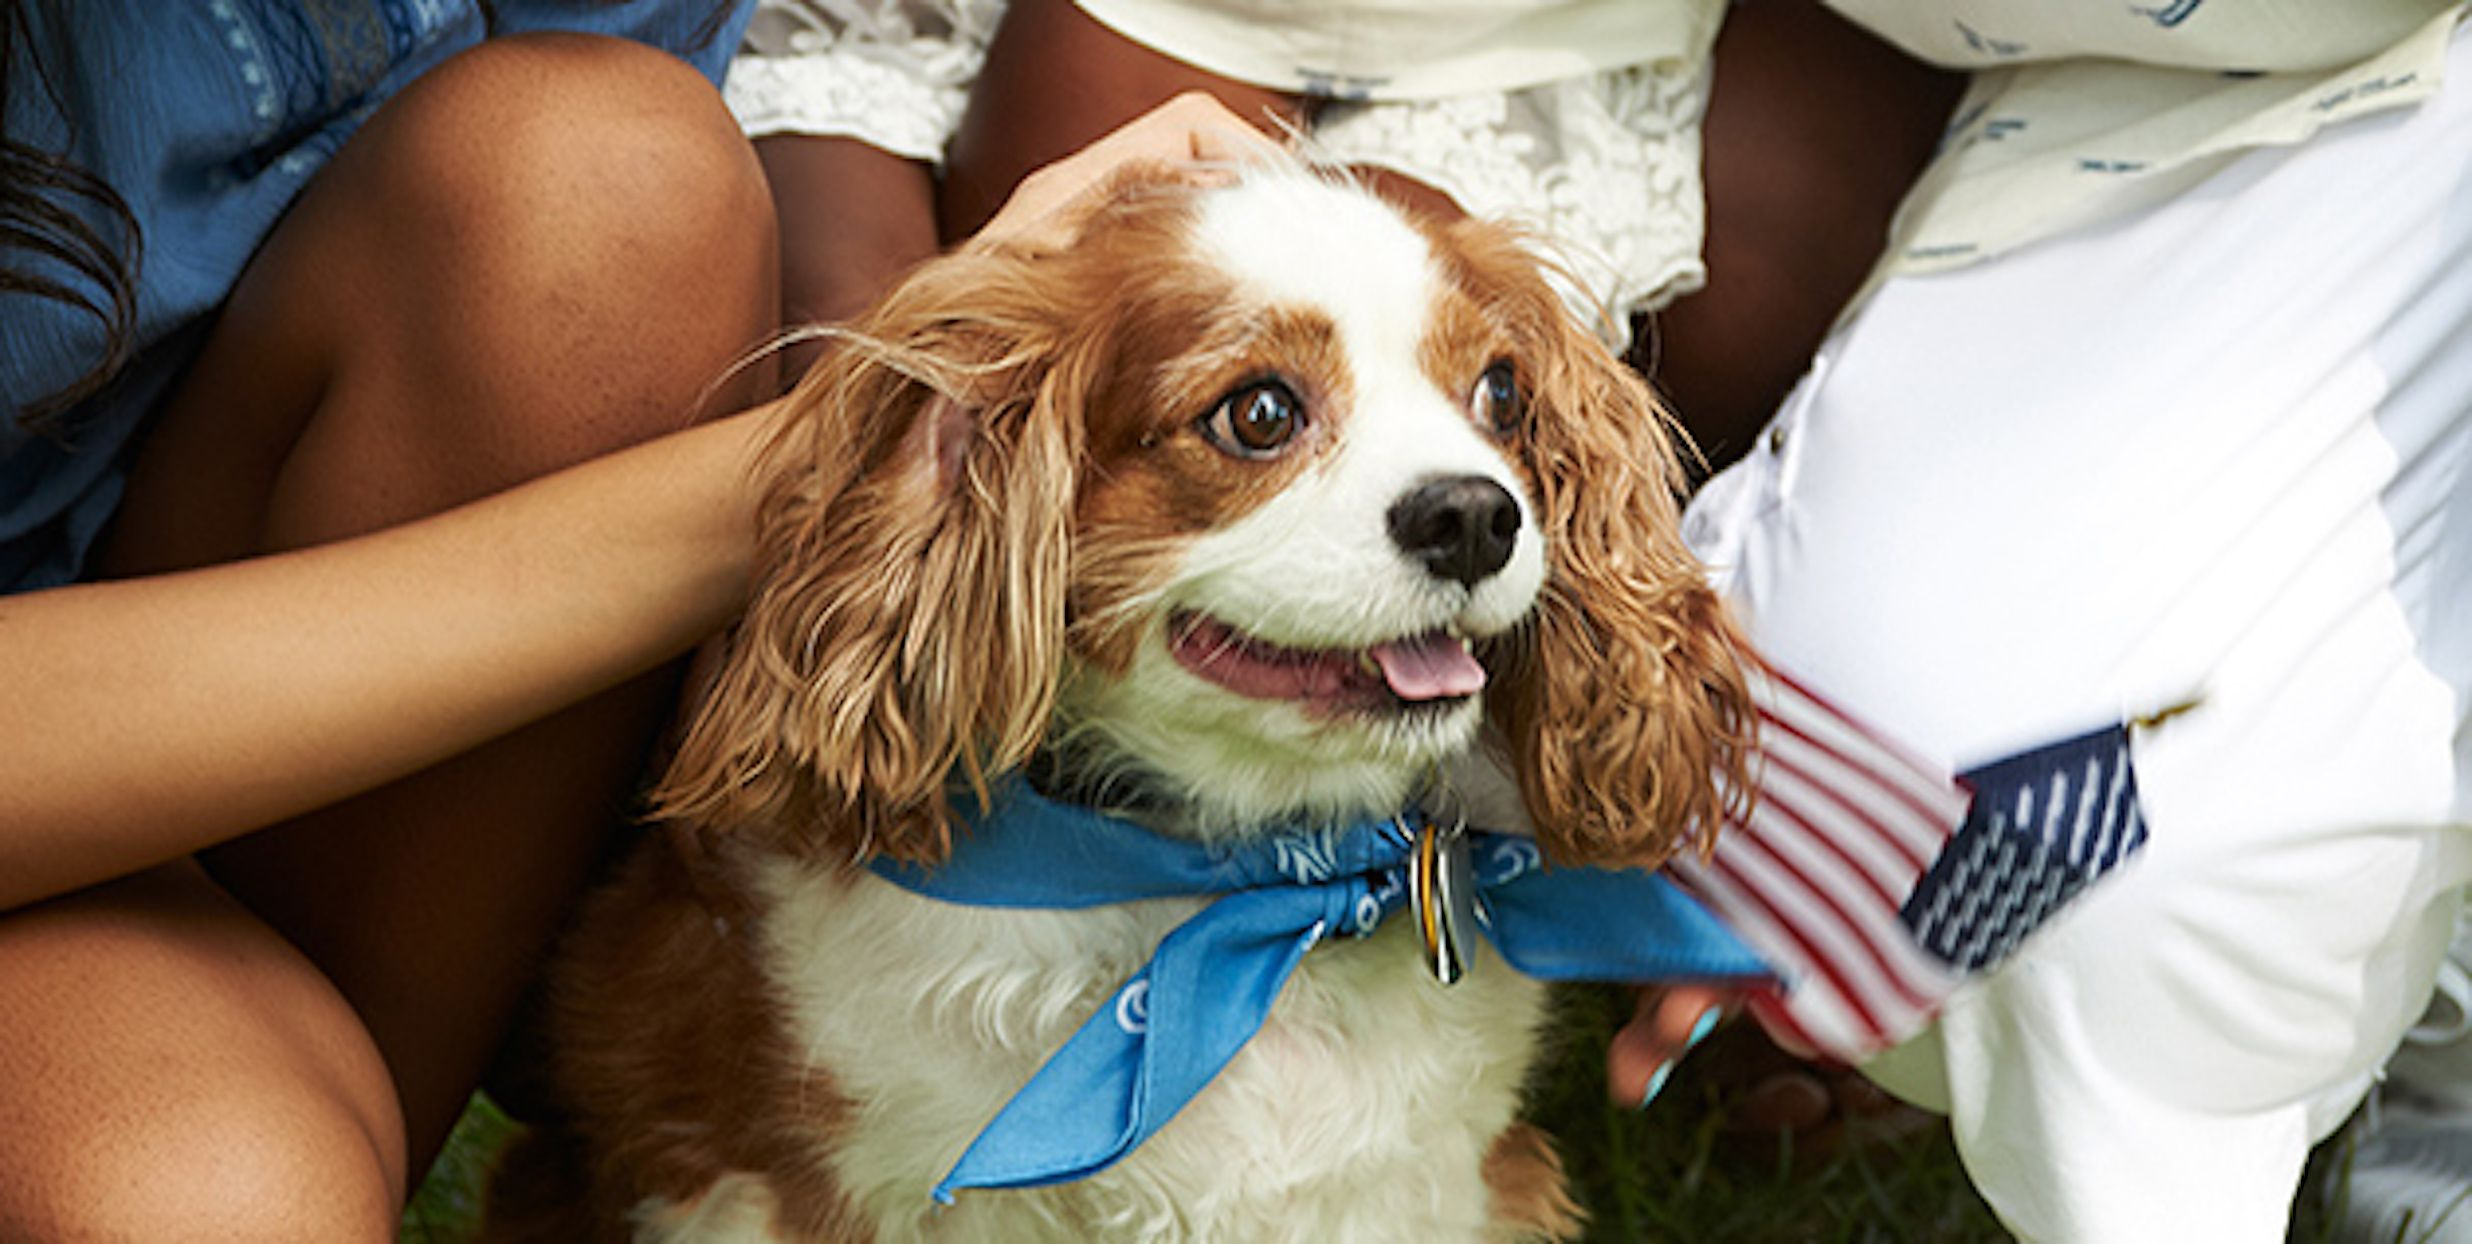 How to calm stressed pets during fireworks according to a